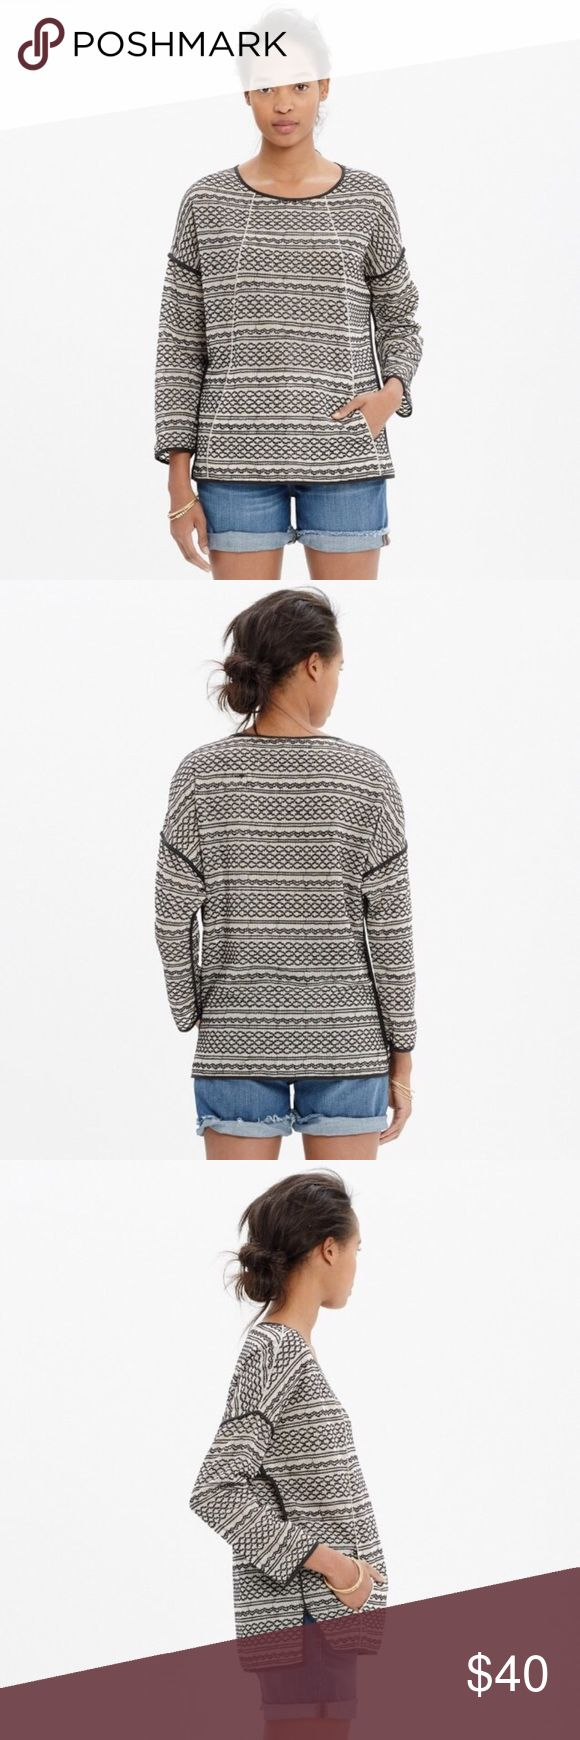 Madewell Tidalwave Pullover Perfect condition Madewell pullover. Perfect lightweight top for summer nights. Kangaroo pouch in the front. Madewell Tops